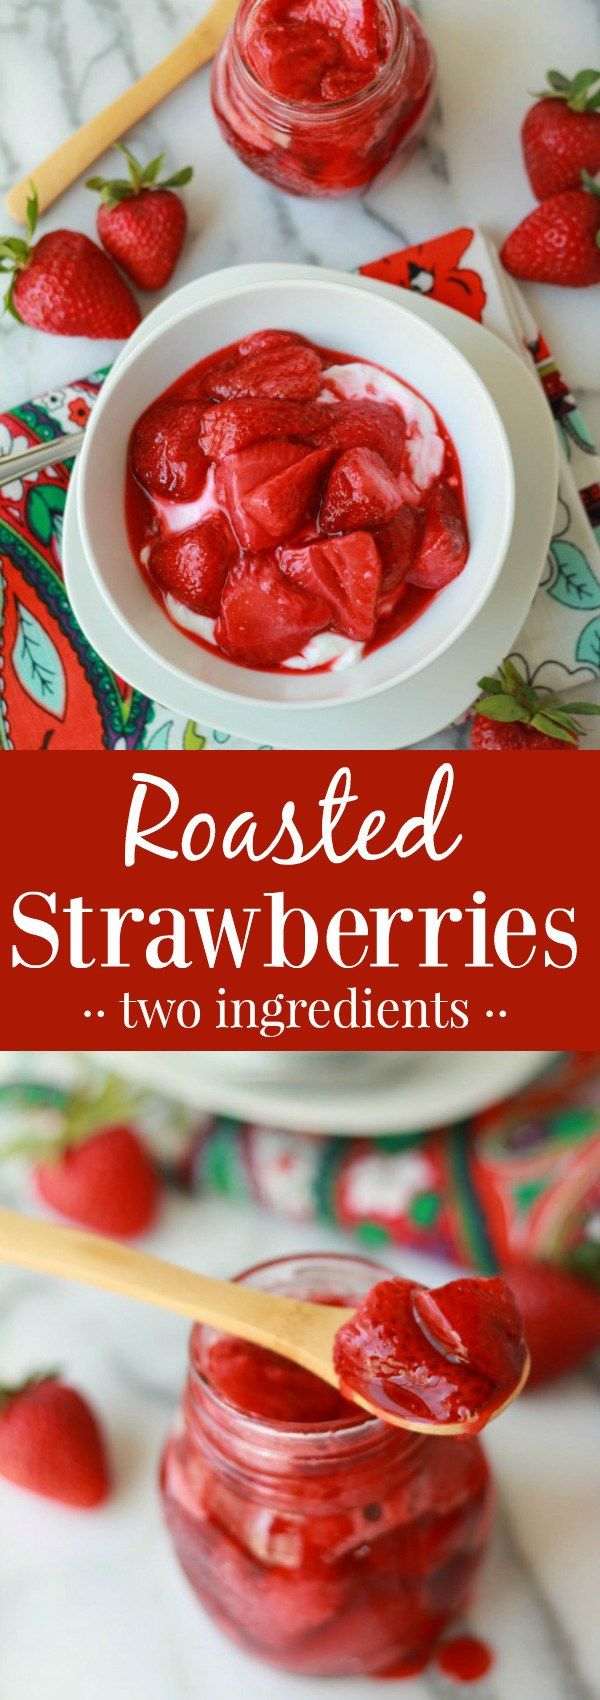 Roasted Strawberries - Sweet and juicy roasted strawberries with a bold strawberry flavor. Eat them on their own, or use as a topping for yogurt, ice cream, oatmeal, or cake.